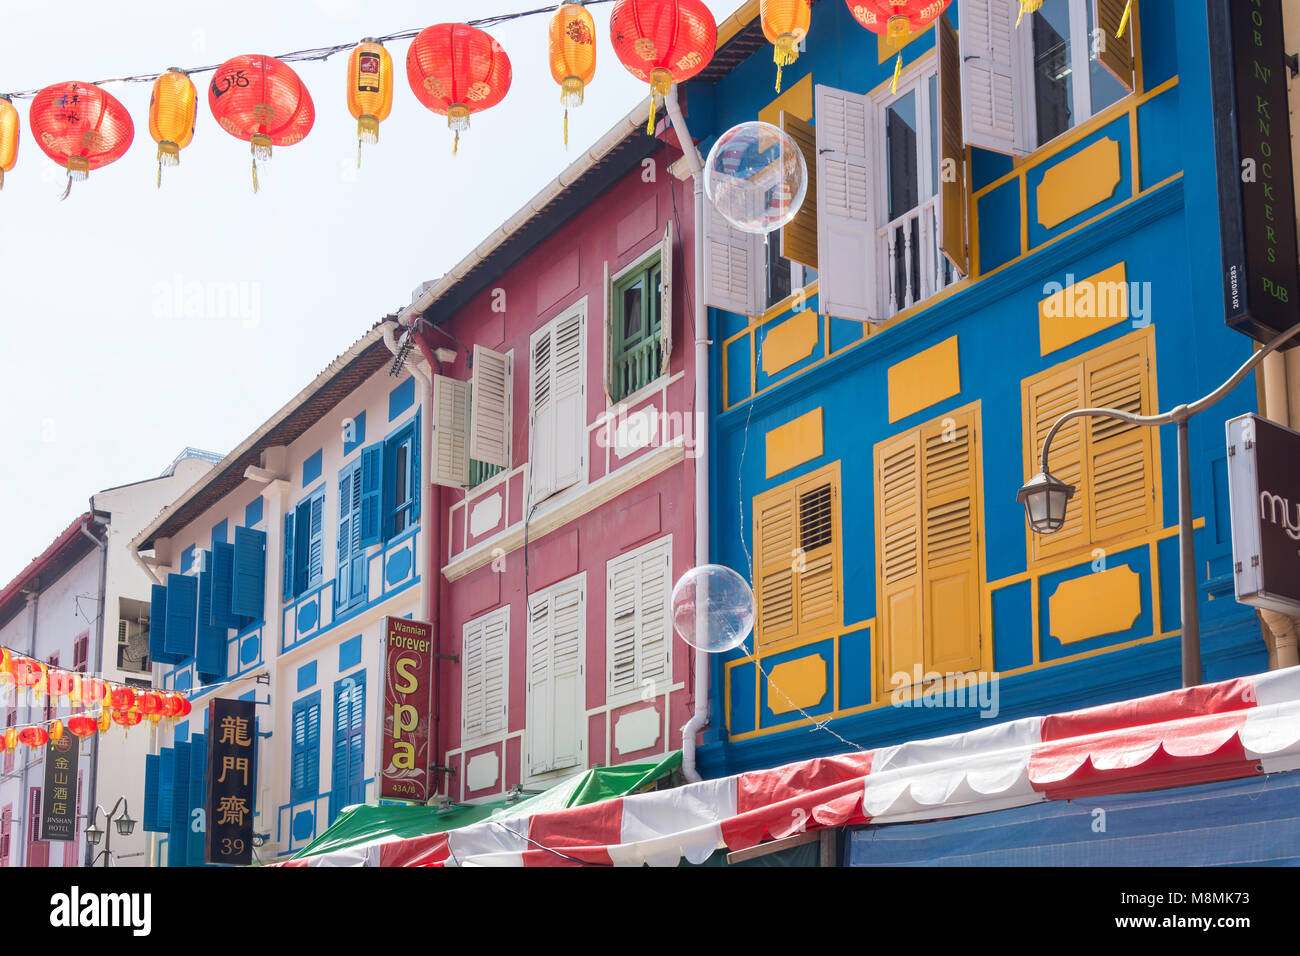 Colourful shophouses and lanterns, Temple Street, Chinatown, Outram District, Central Area, Singapore Island (Pulau - Stock Image